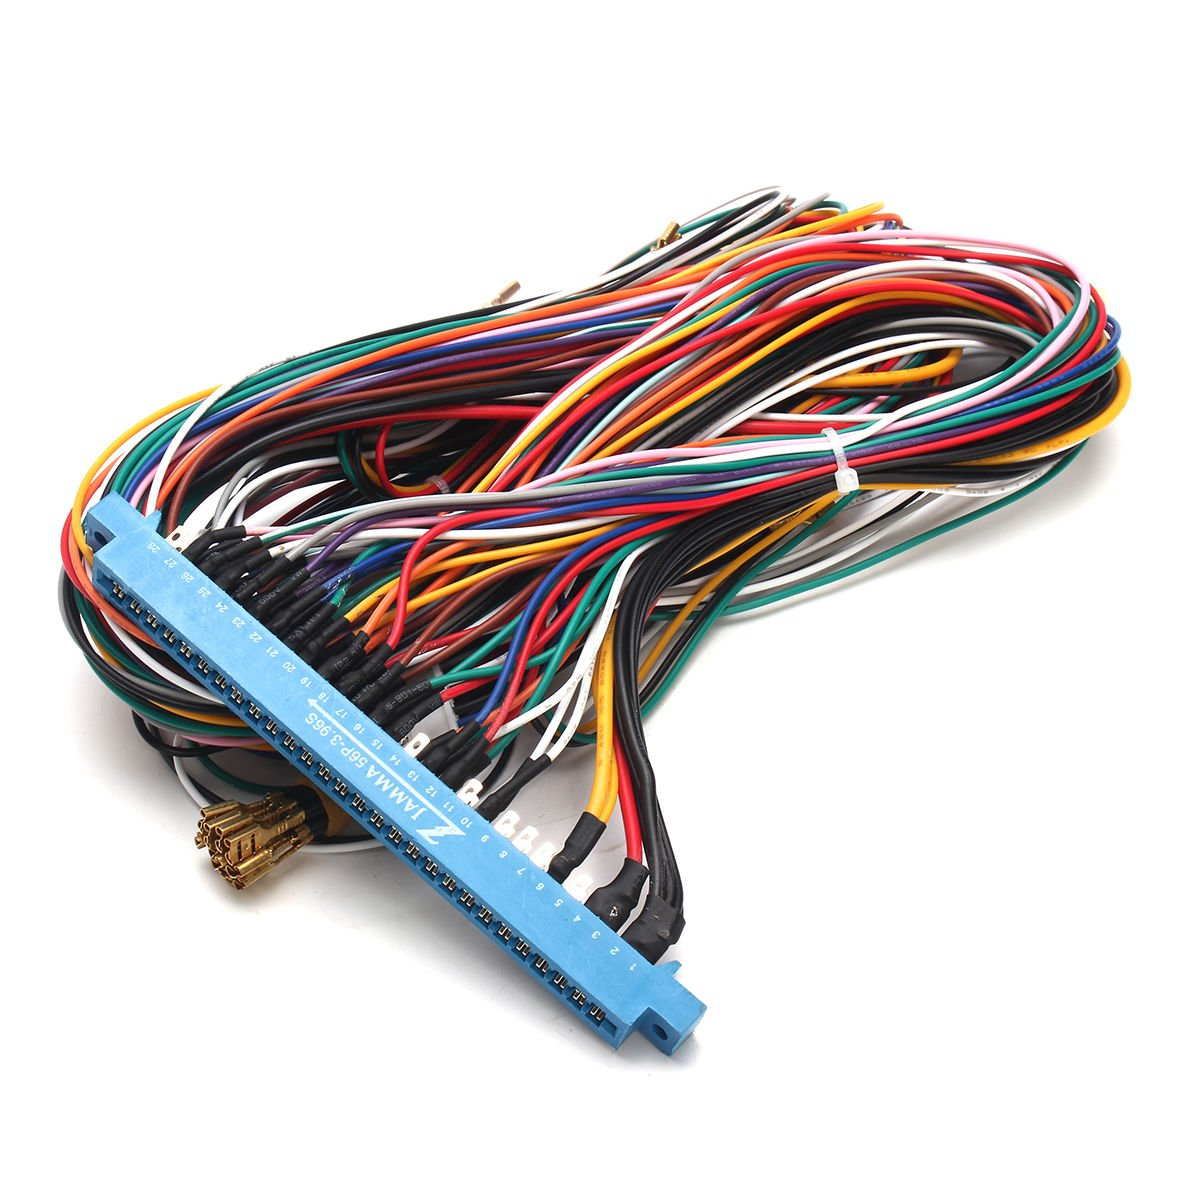 28 Pins Jamma Harness Cabinet Wire Wiring Loom For Arcade Game PCB Video Board by Atomic Market